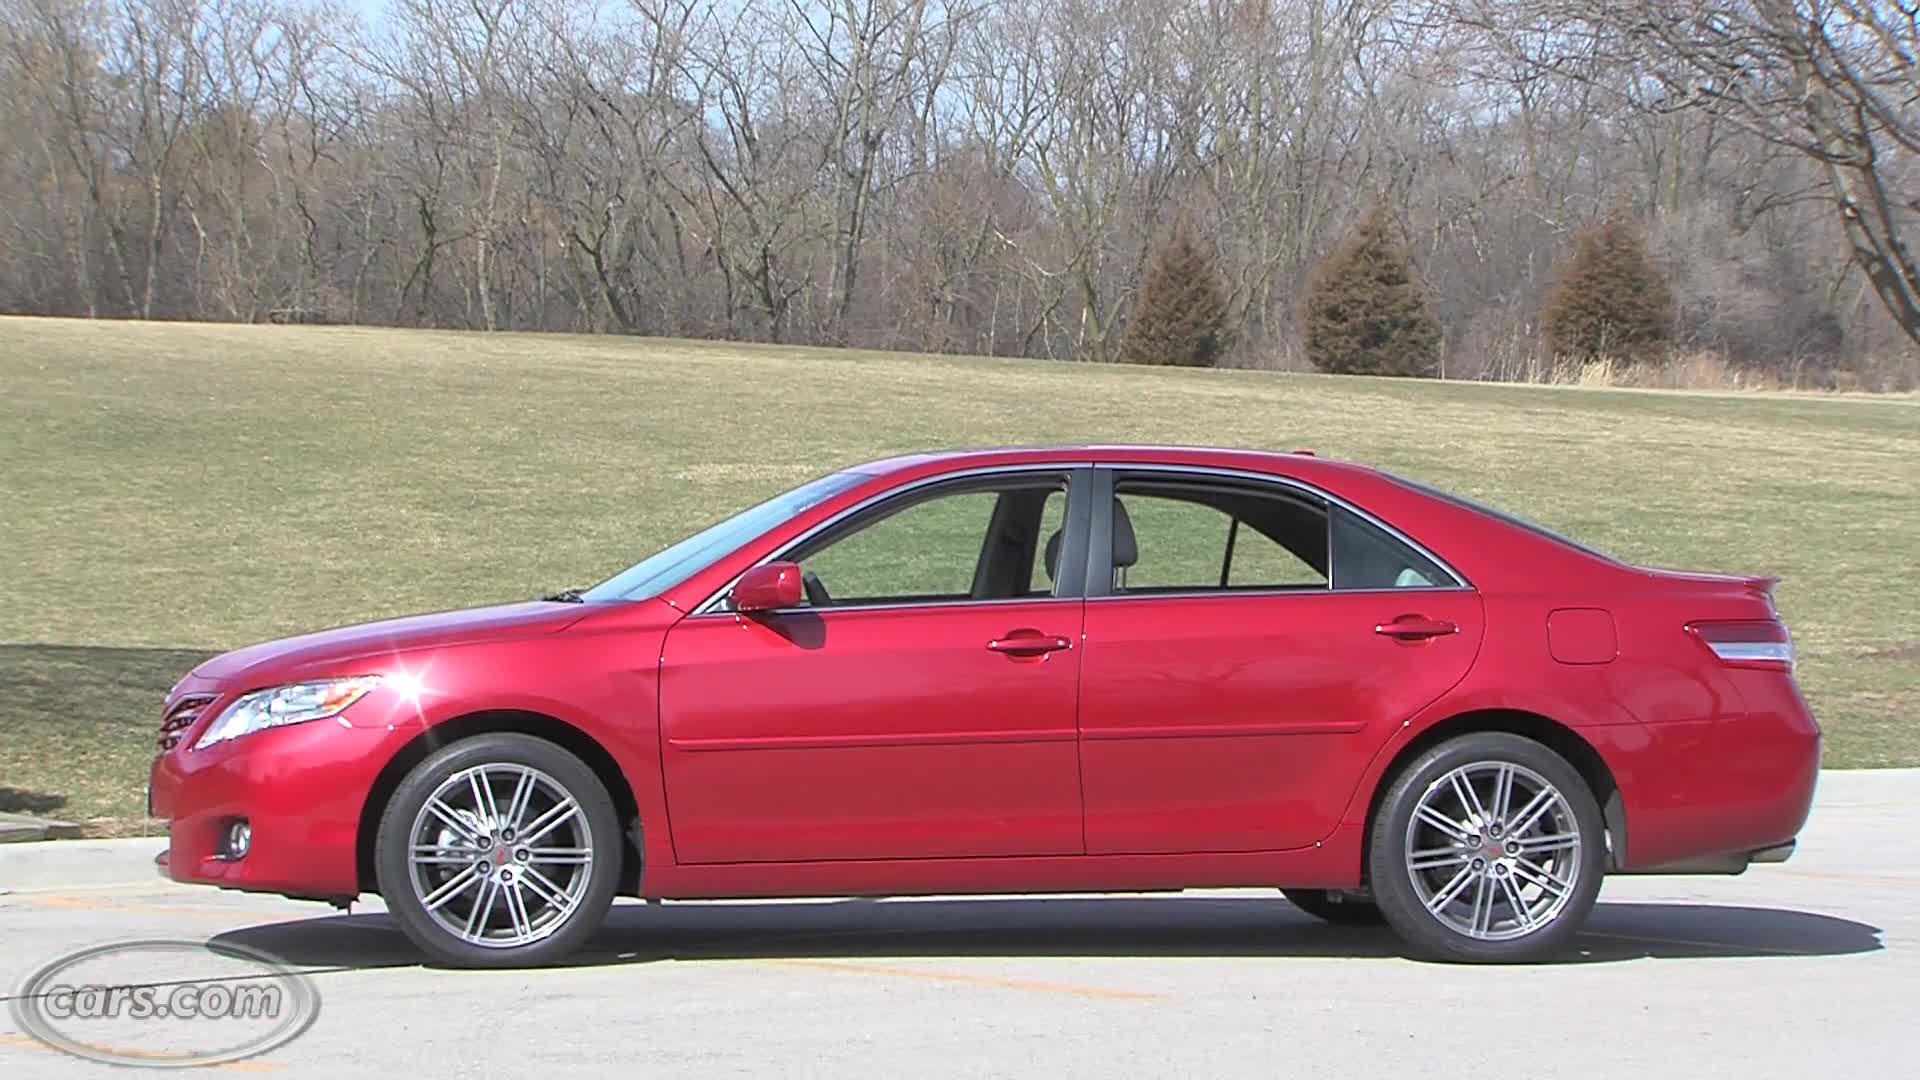 1578086878_4814669136001_894747371001-vs Wonderful Kelley Blue Book 2006 toyota Camry Cars Trend